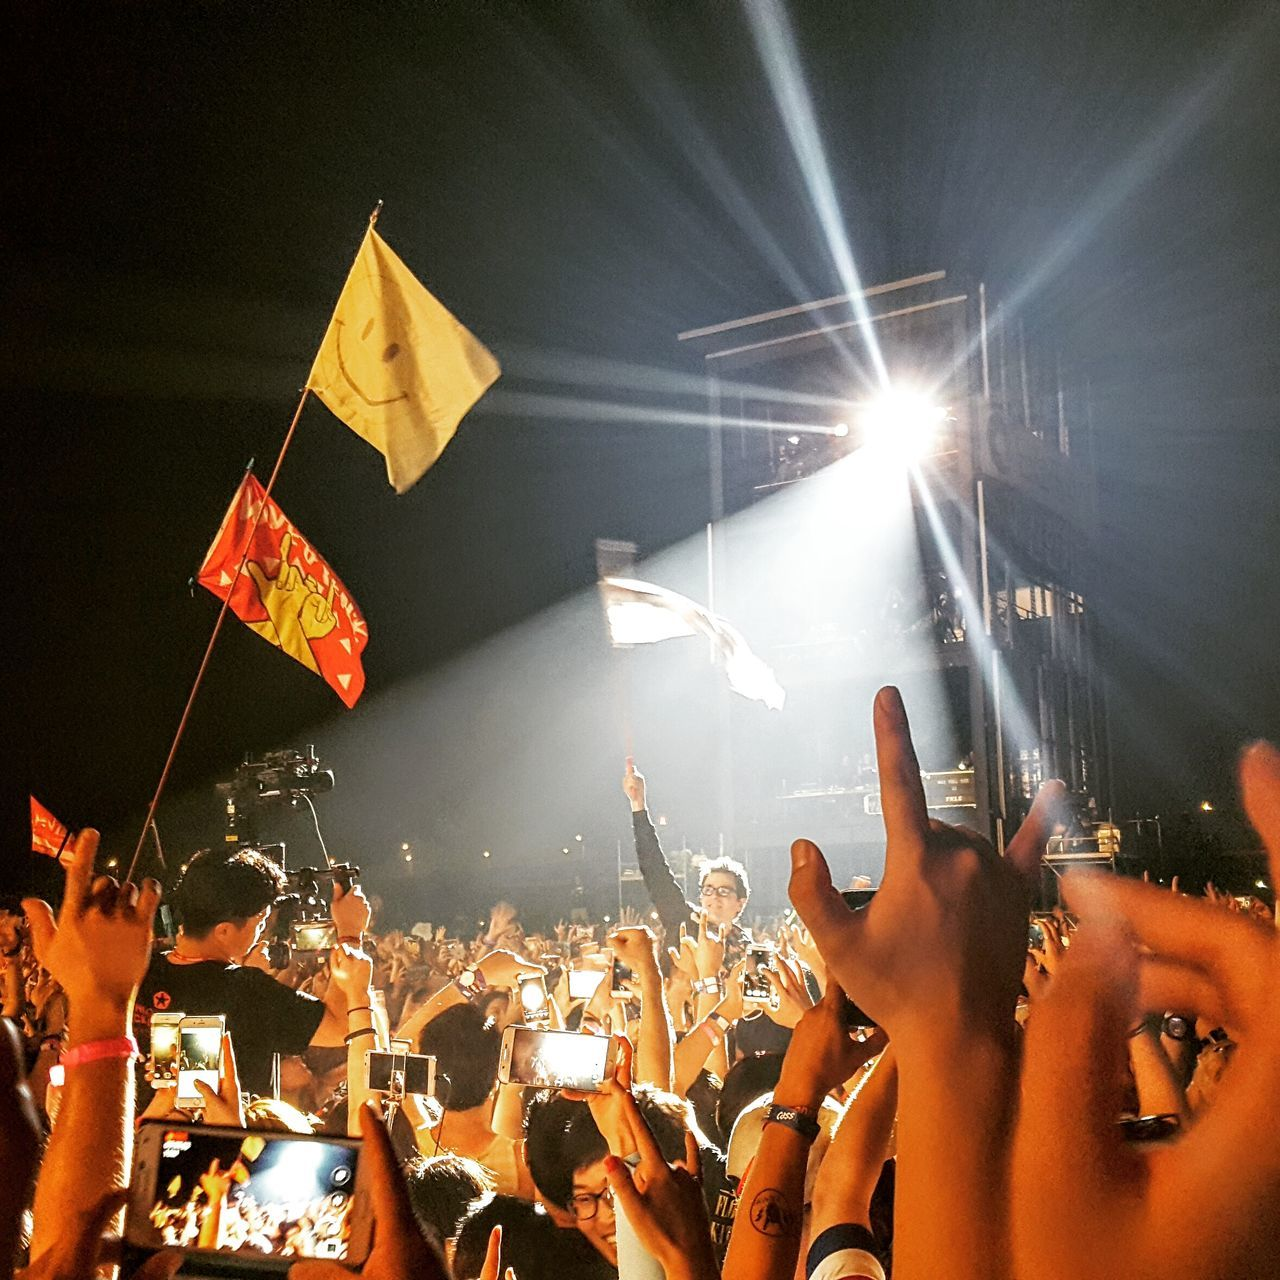 large group of people, crowd, real people, men, music, enjoyment, fun, night, event, arts culture and entertainment, nightlife, leisure activity, illuminated, women, audience, lifestyles, youth culture, performance, togetherness, popular music concert, outdoors, human hand, people